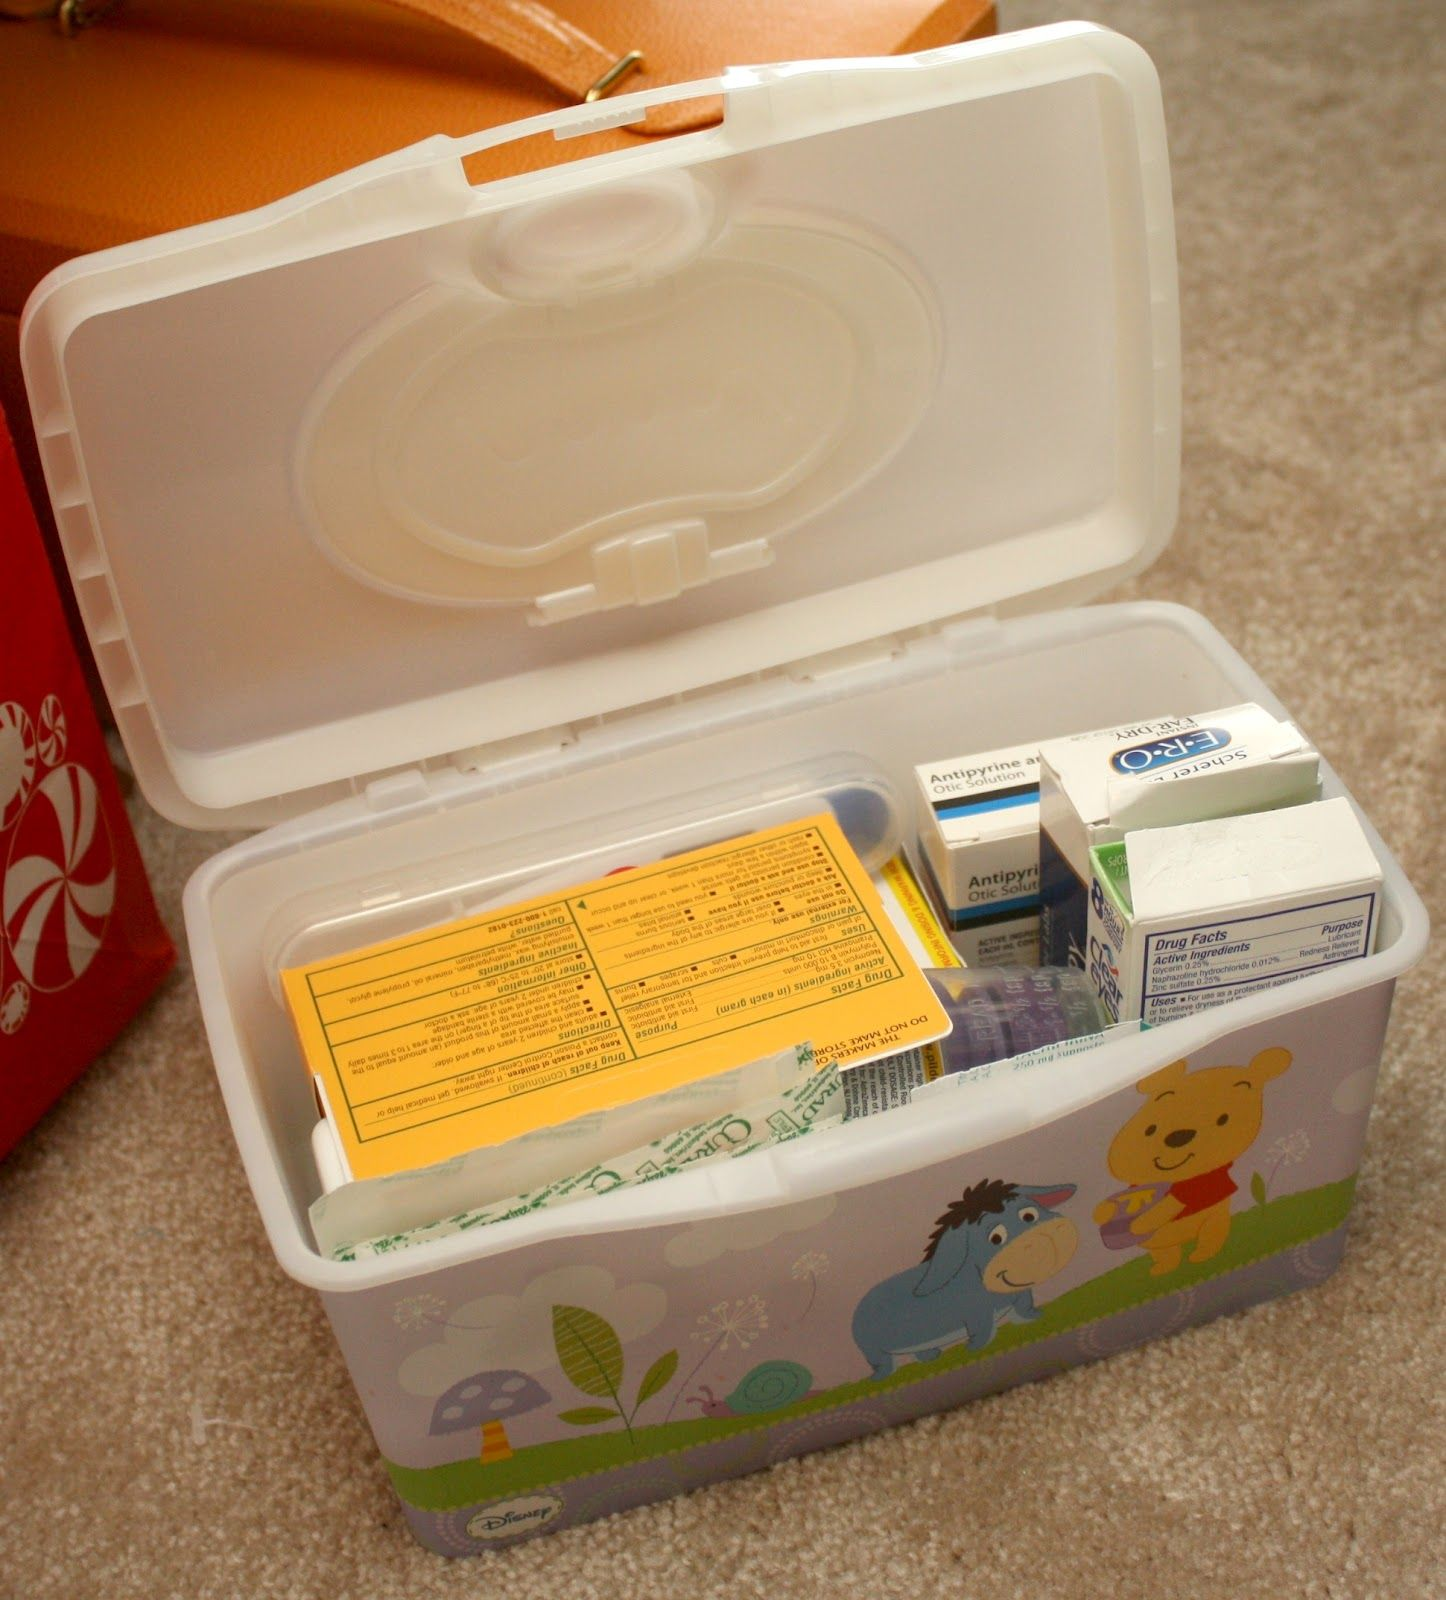 First Aid Kit In Wet Wipe Box For Traveling Wet Wipes Box Wipes Box Helpful Hints